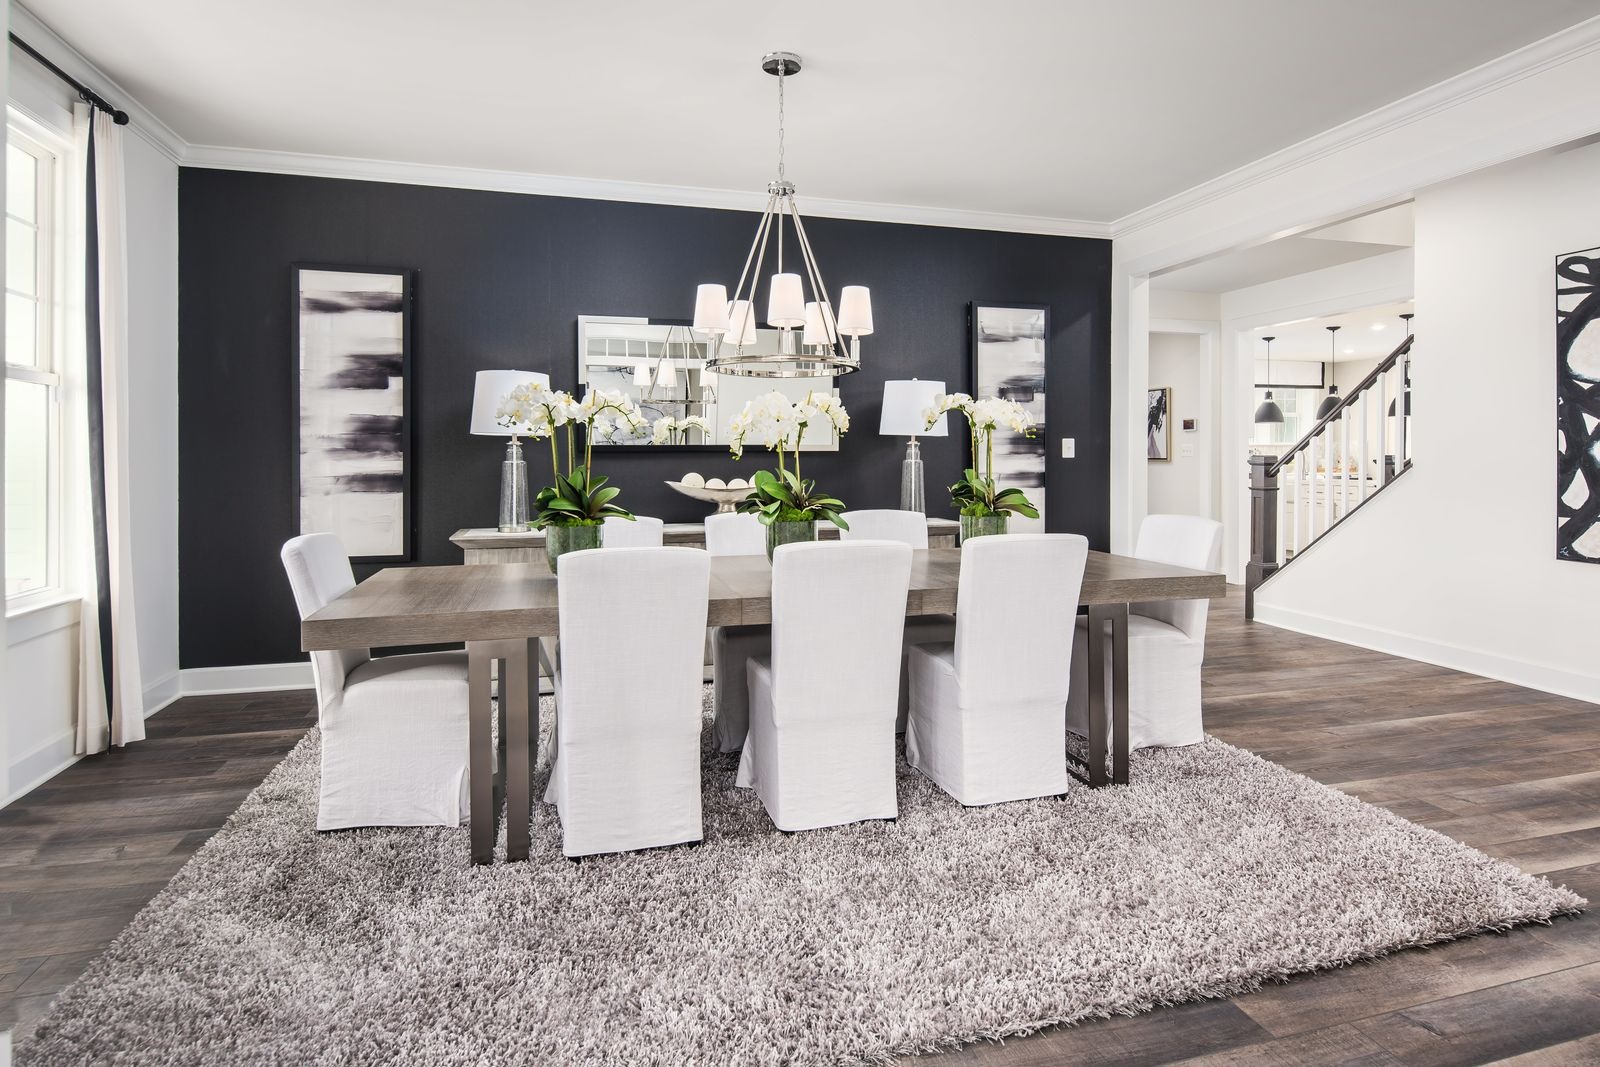 Living Area featured in the Stratford Hall By HeartlandHomes in Morgantown, WV